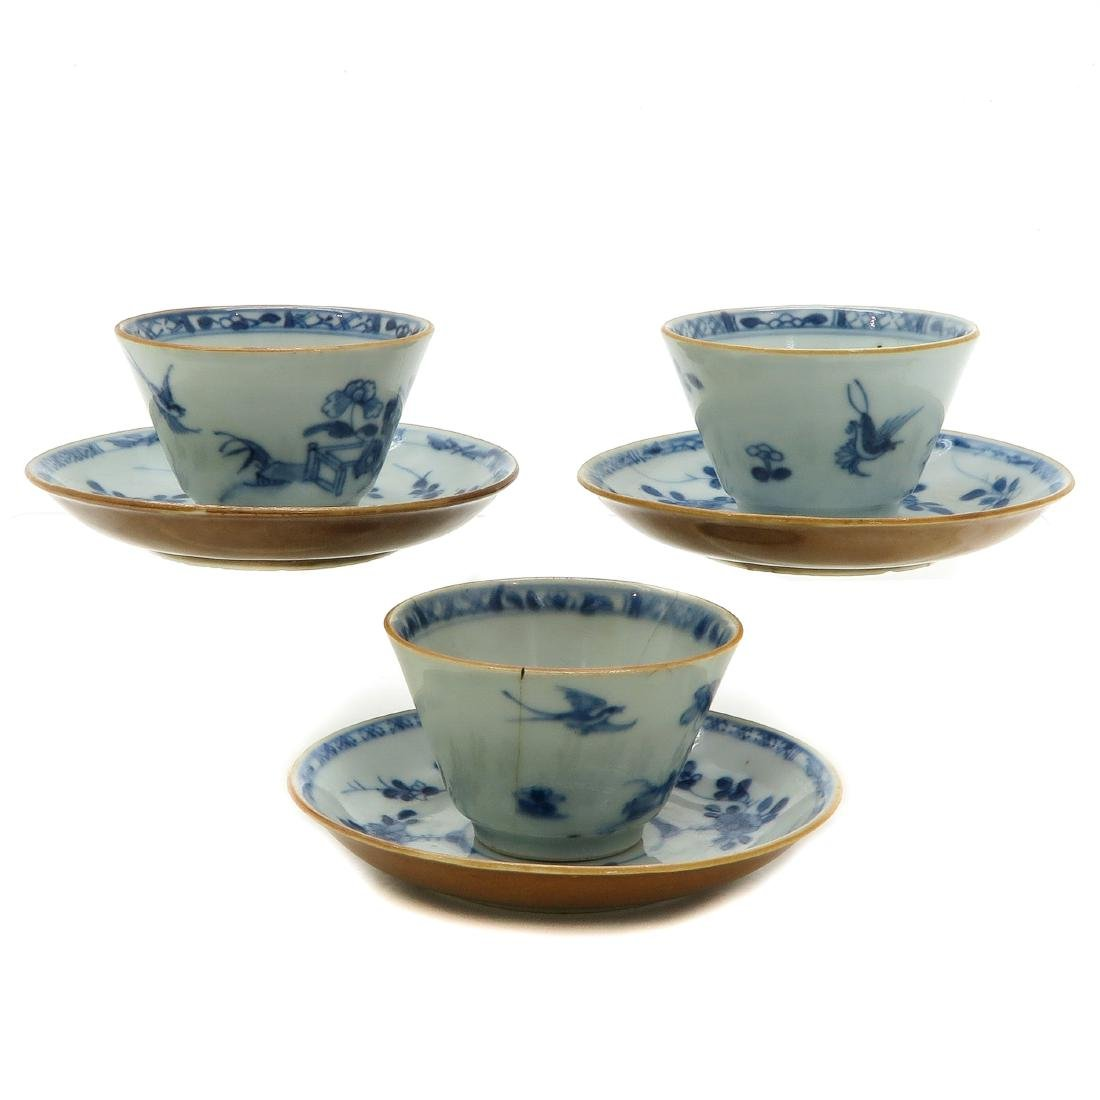 Lot of 3 Cups and Saucers - 3